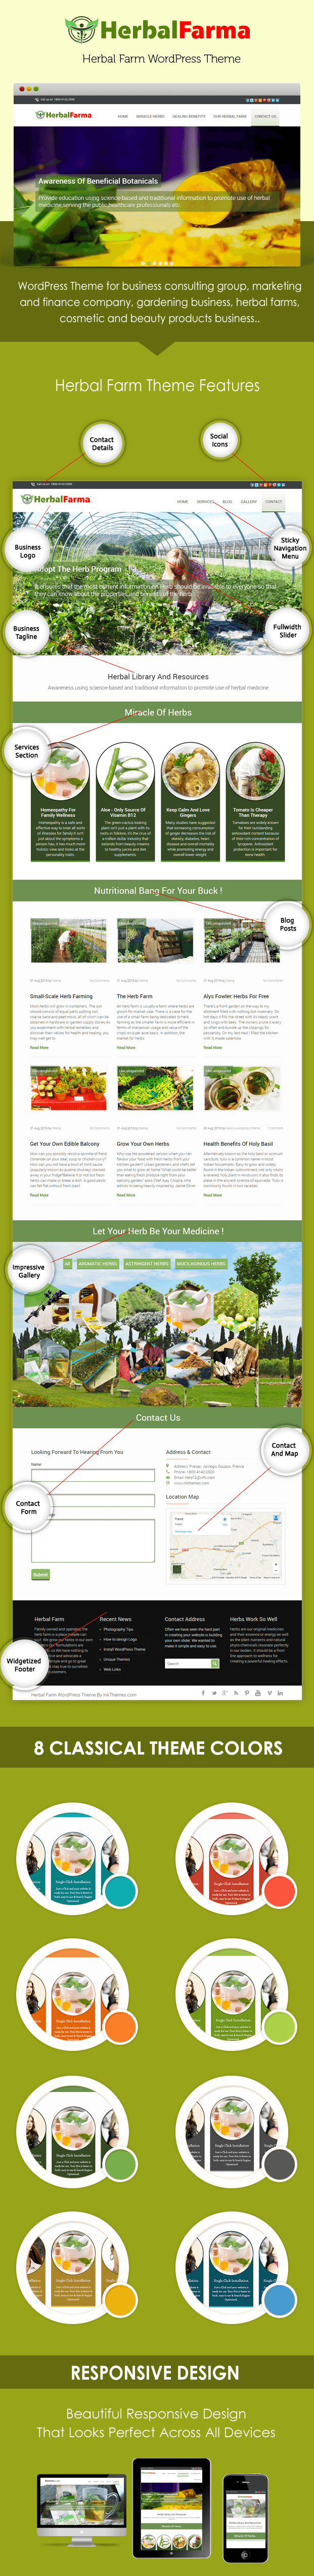 HerbalFarma WordPress Theme